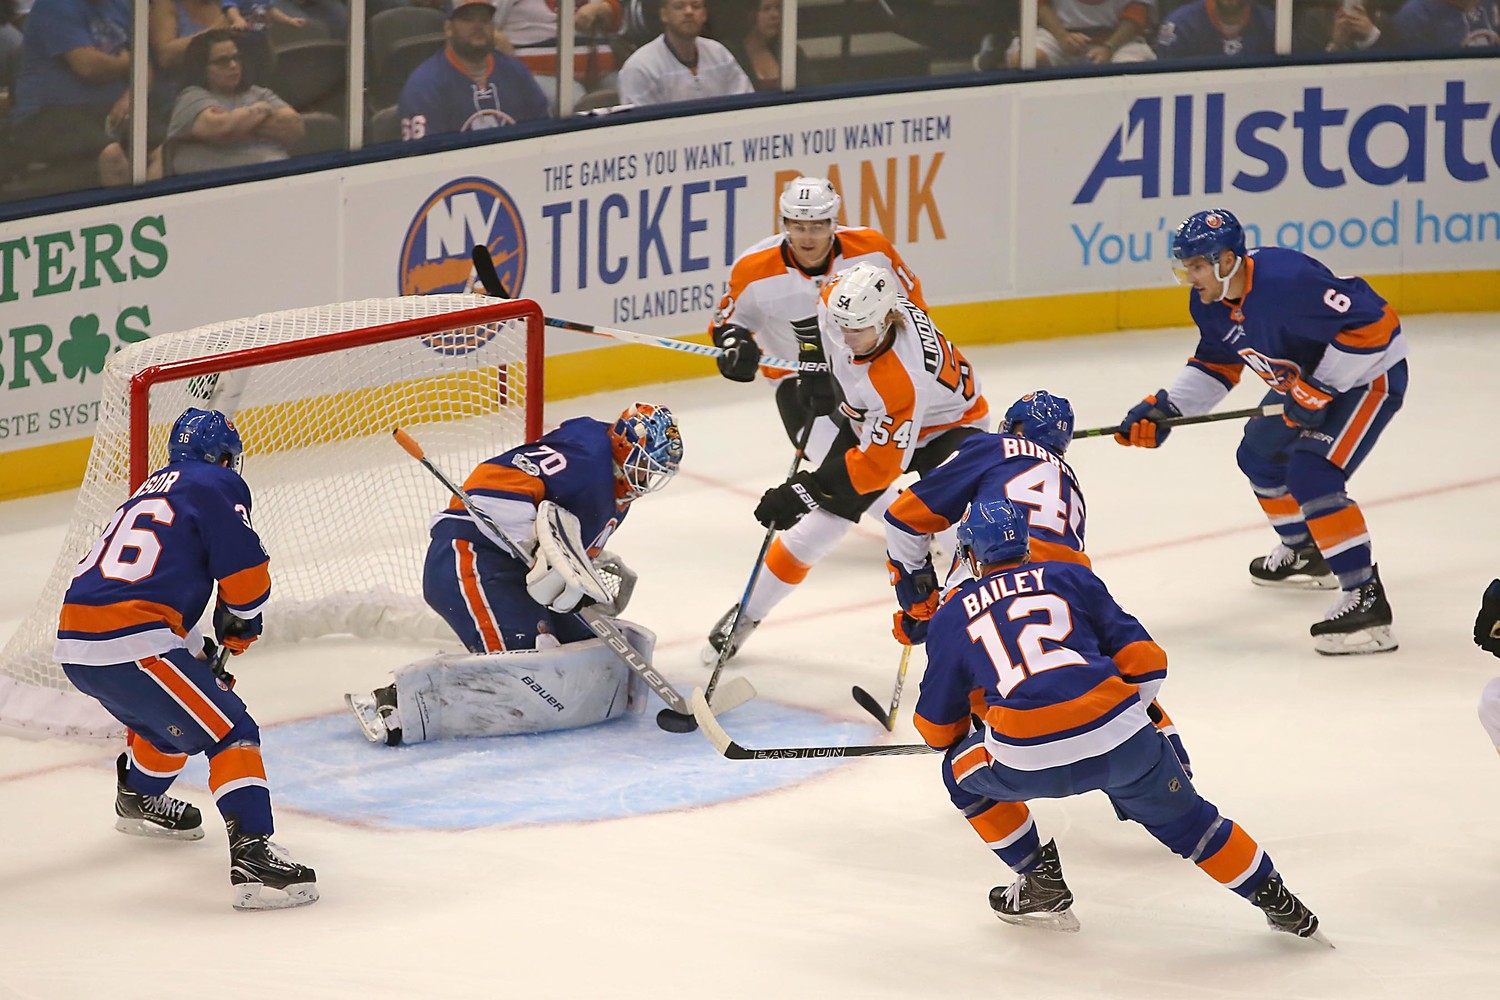 The islander 's goalie Kristers Gudlevskis, right, made a save on a shot by the Flyers Oskar Lindblom.